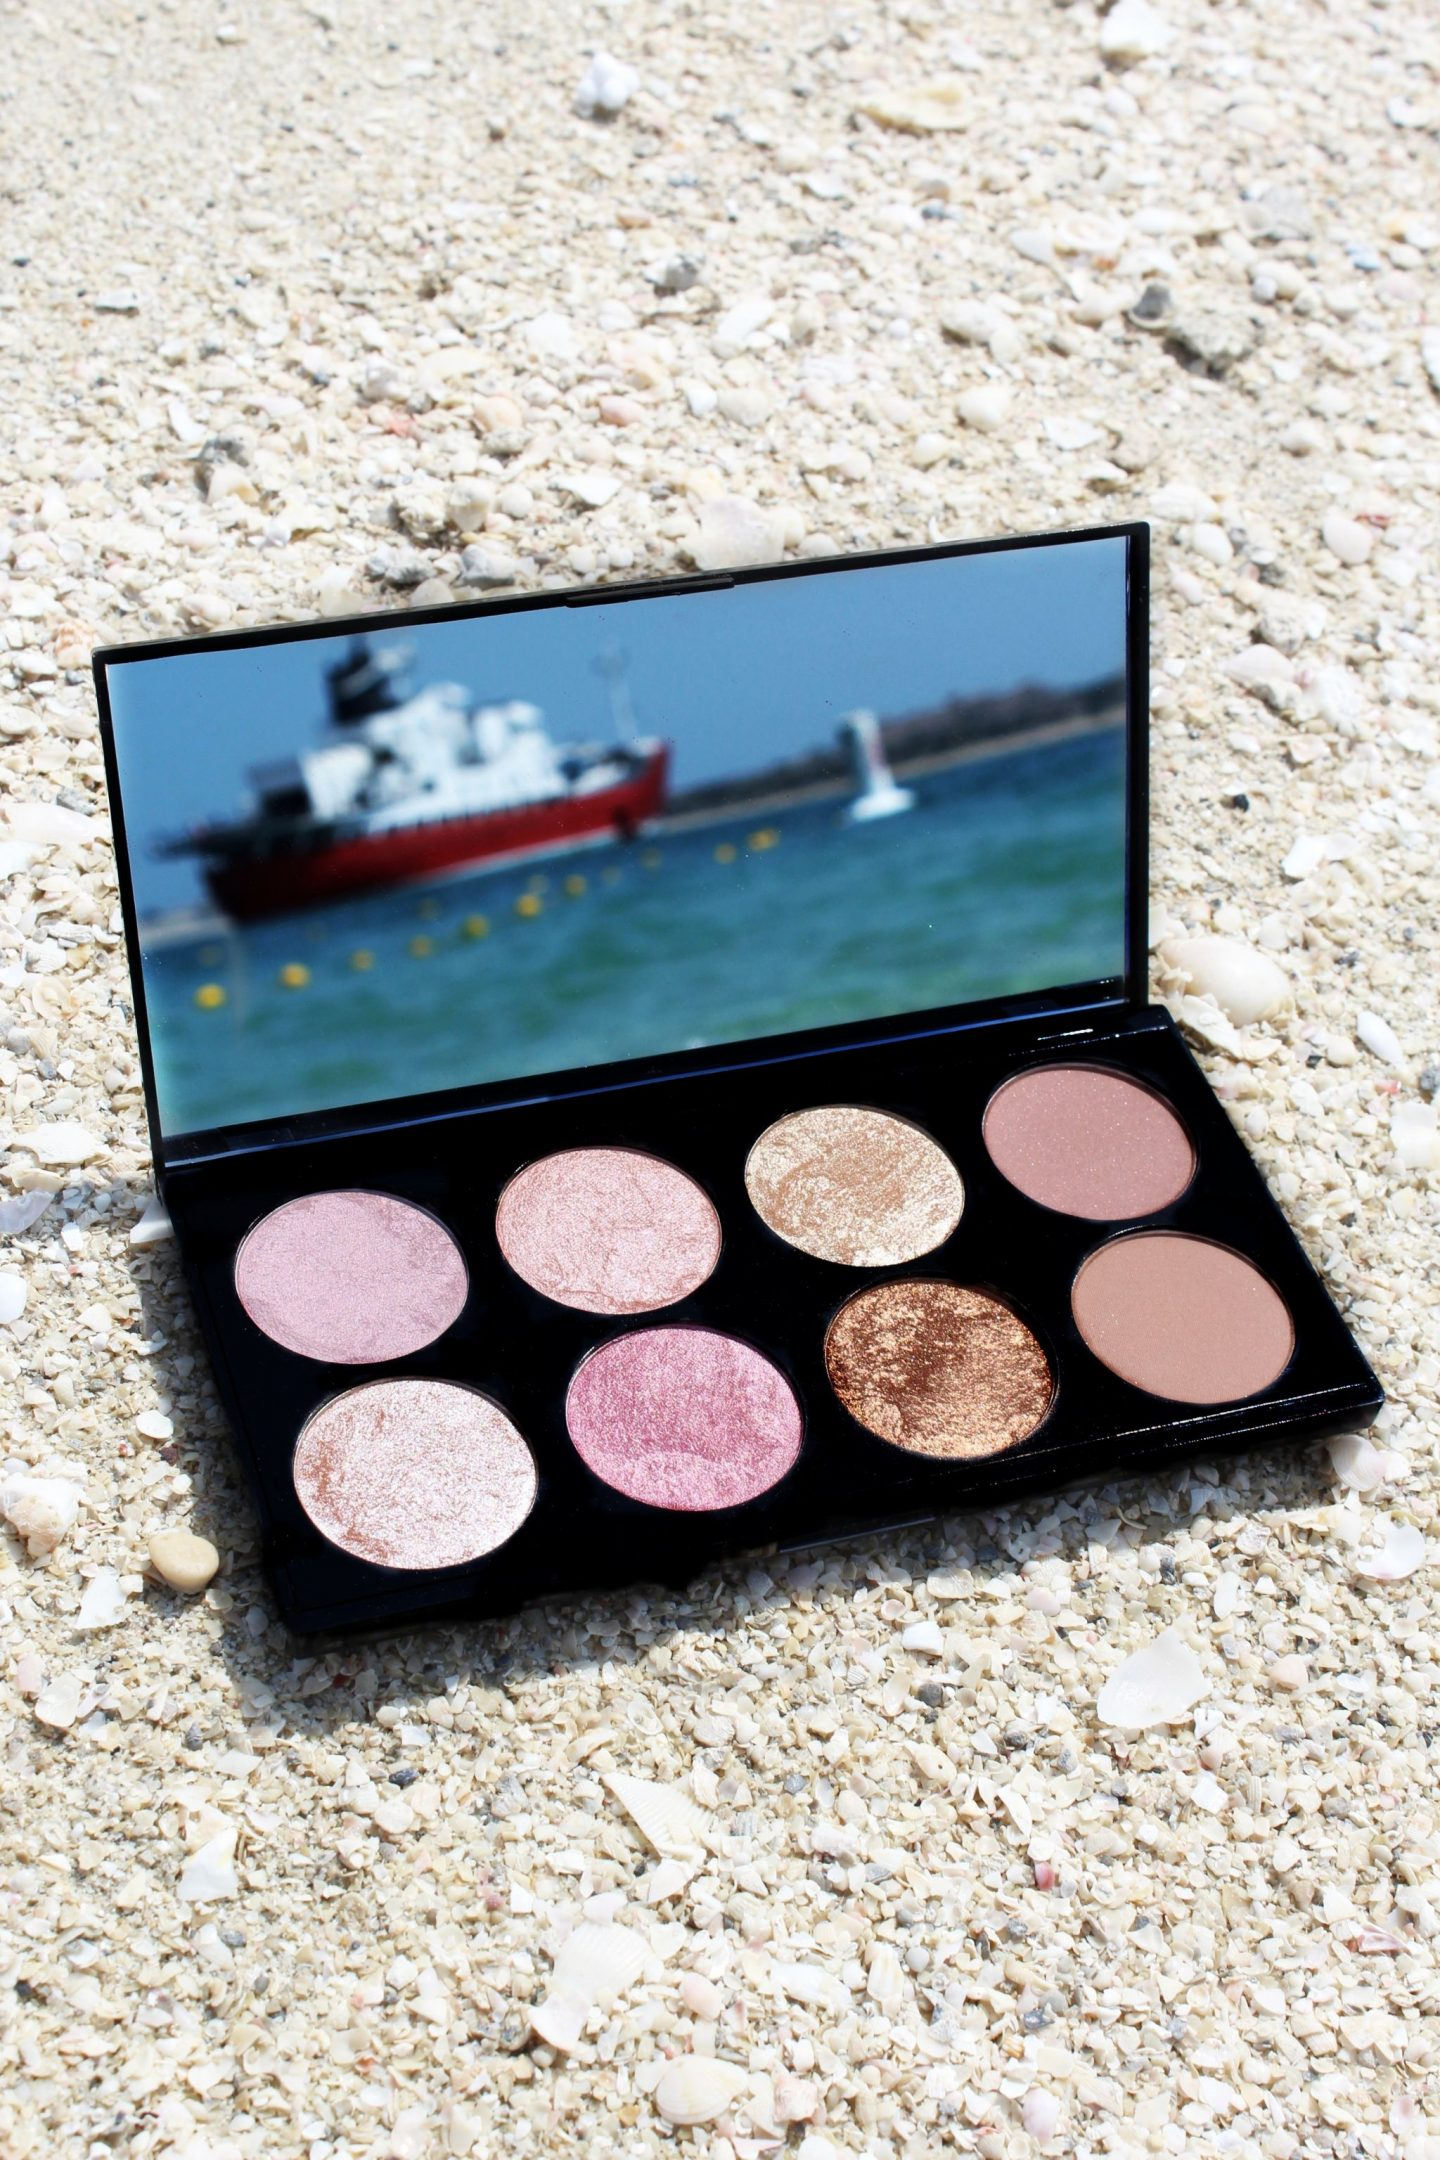 Makeup Revolution Golden Sugar 2 Rose Gold Blush Palette - Miel and Mint